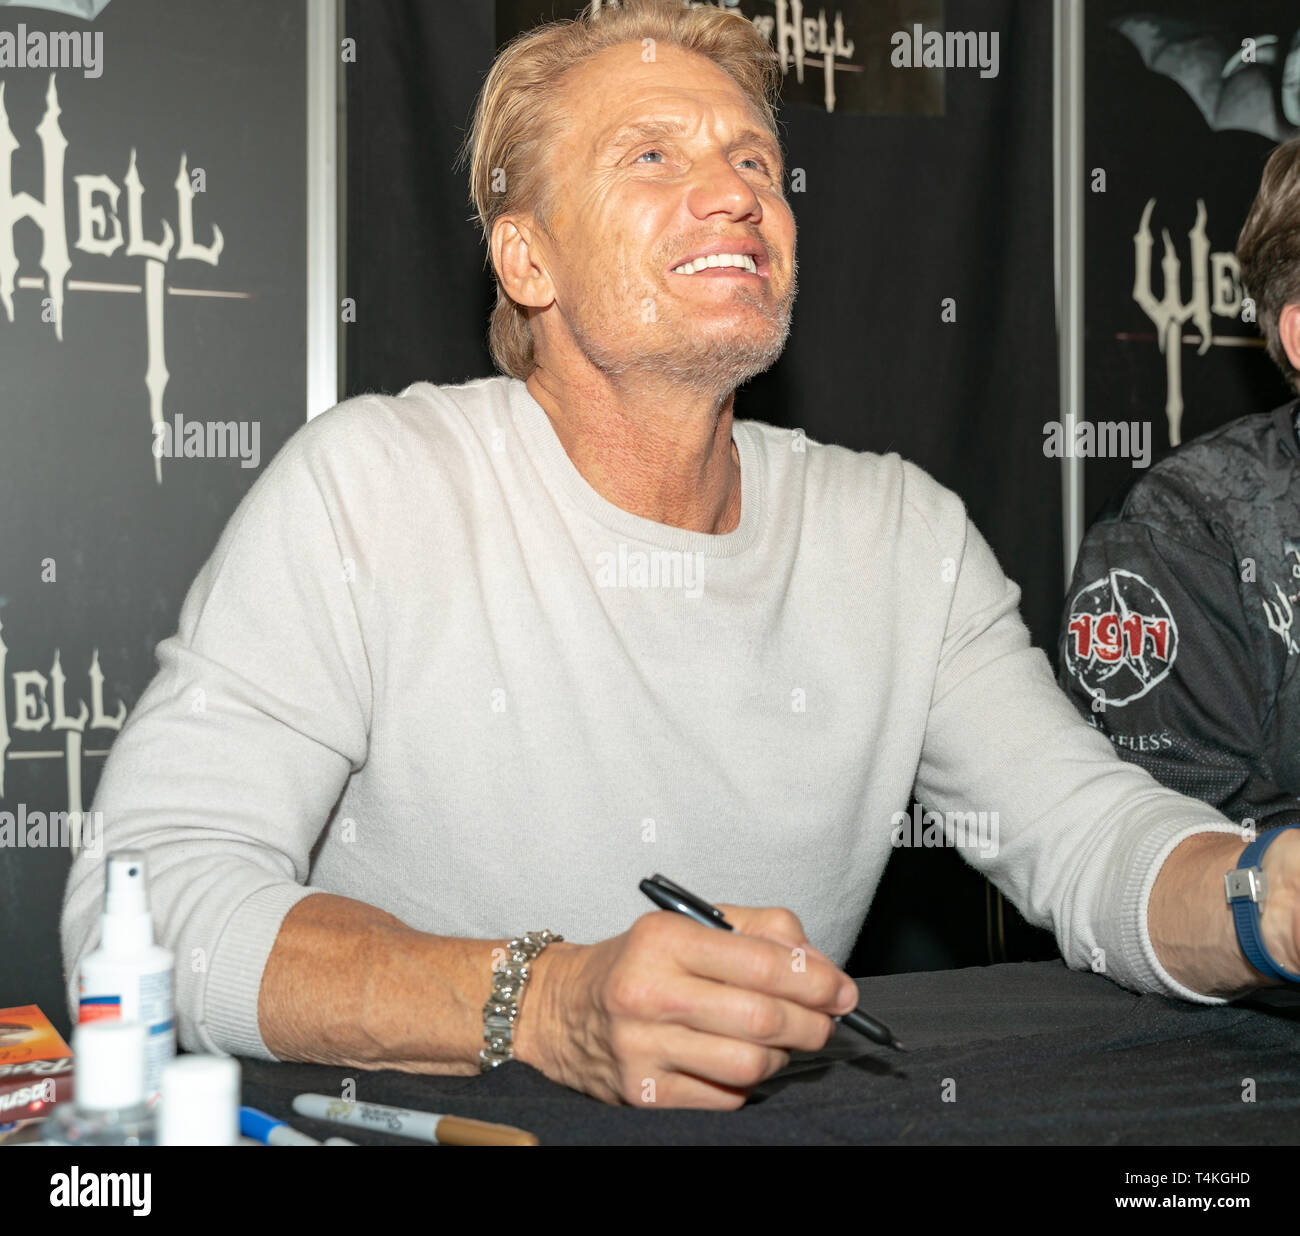 DORTMUND, GERMANY - April 13th 2018: Dolph Lundgren (*1957, Swedish actor) signing autographs for fans at Weekend of Hell Spring Edition 2019 - Stock Image